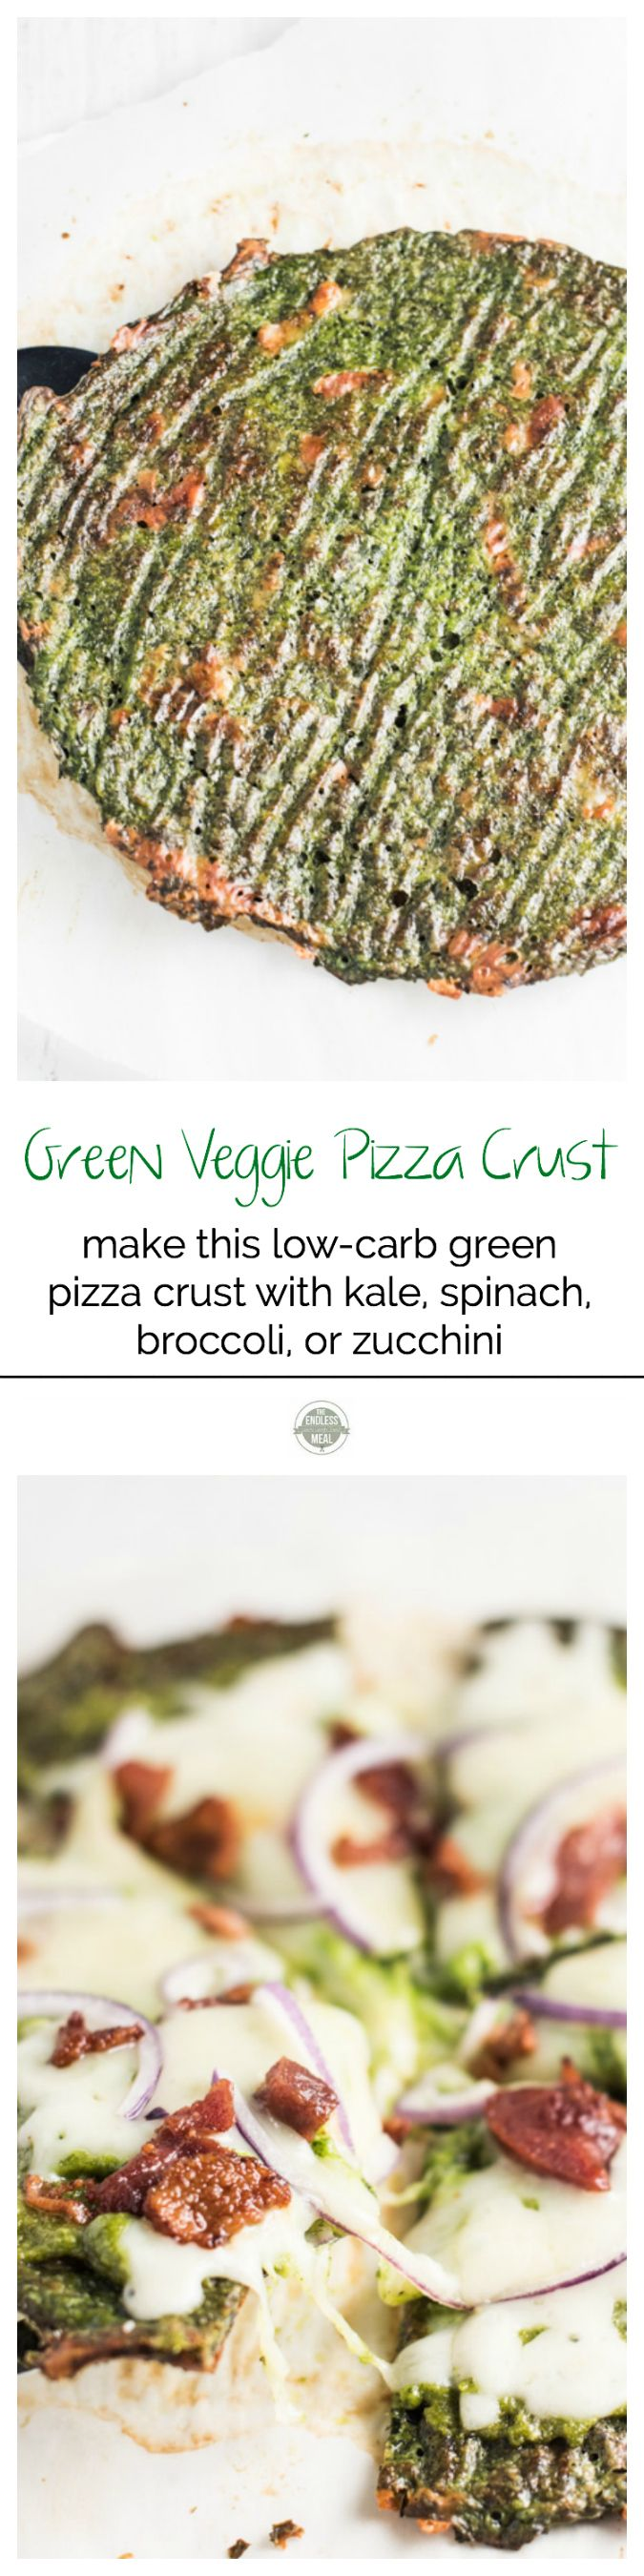 Green Veggie Pizza Crust | The Endless Meal